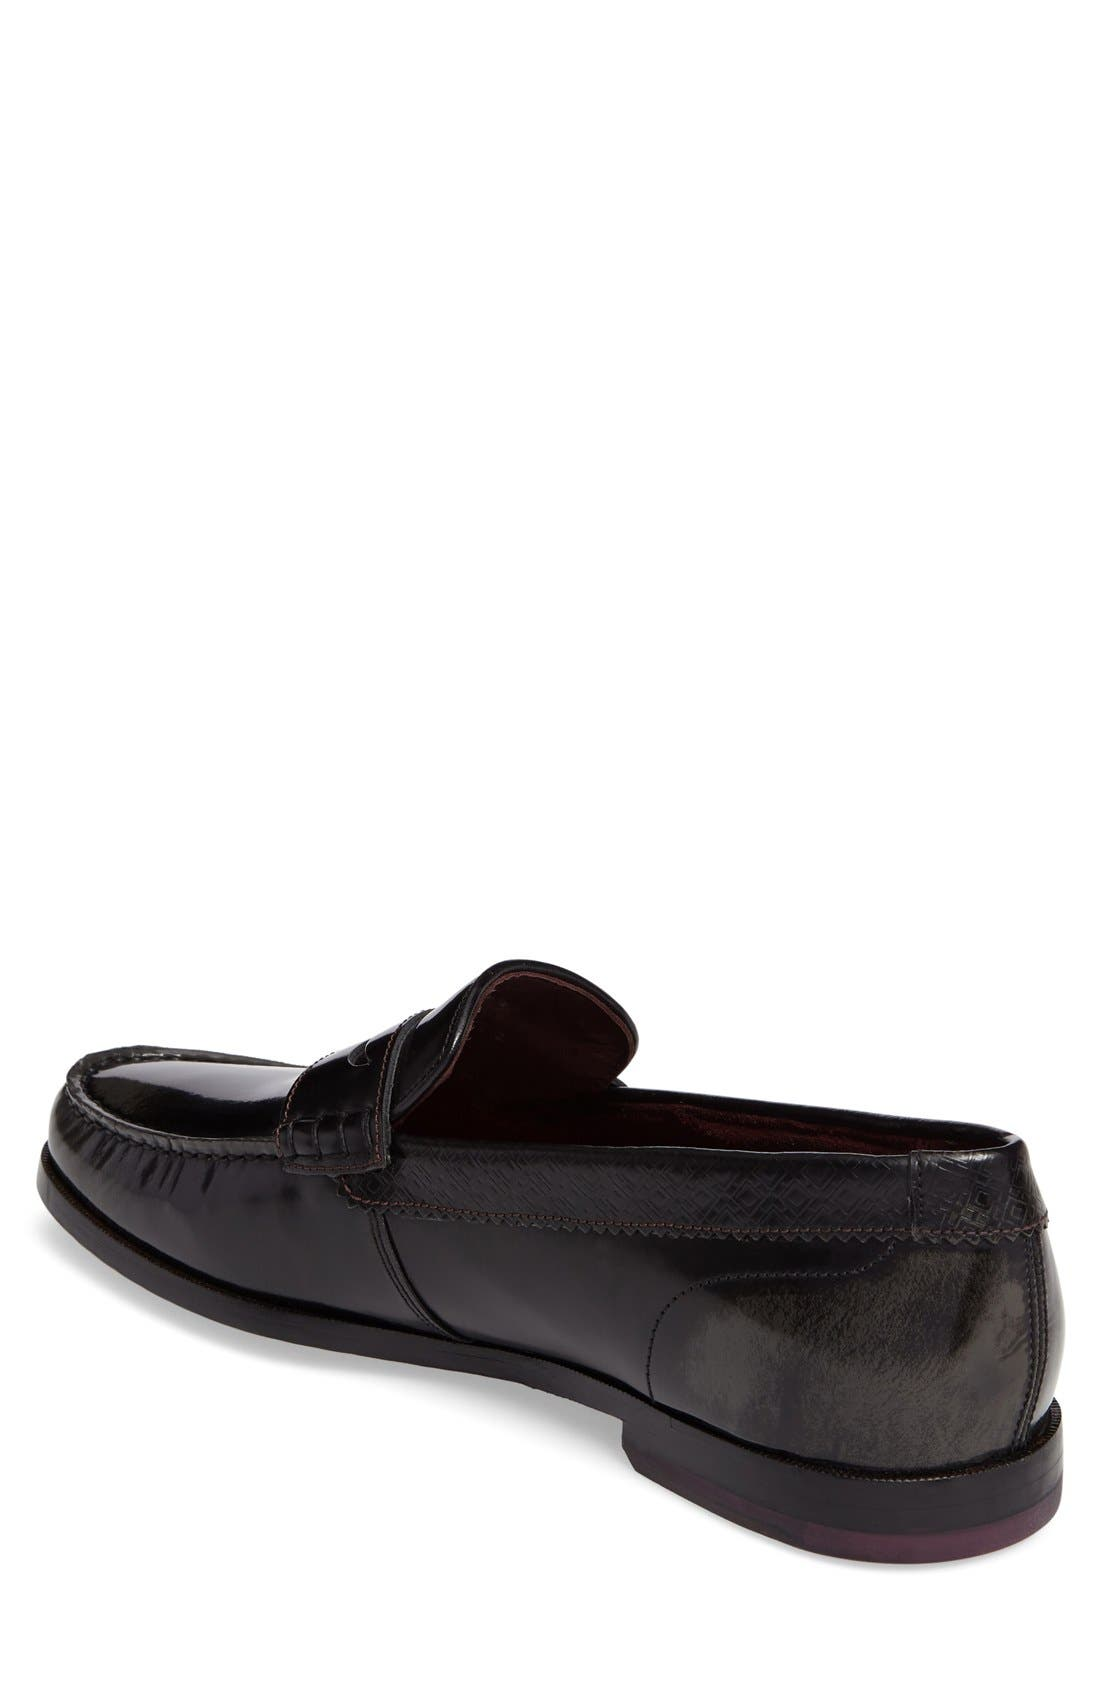 Rommeo Penny Loafer,                             Alternate thumbnail 6, color,                             028